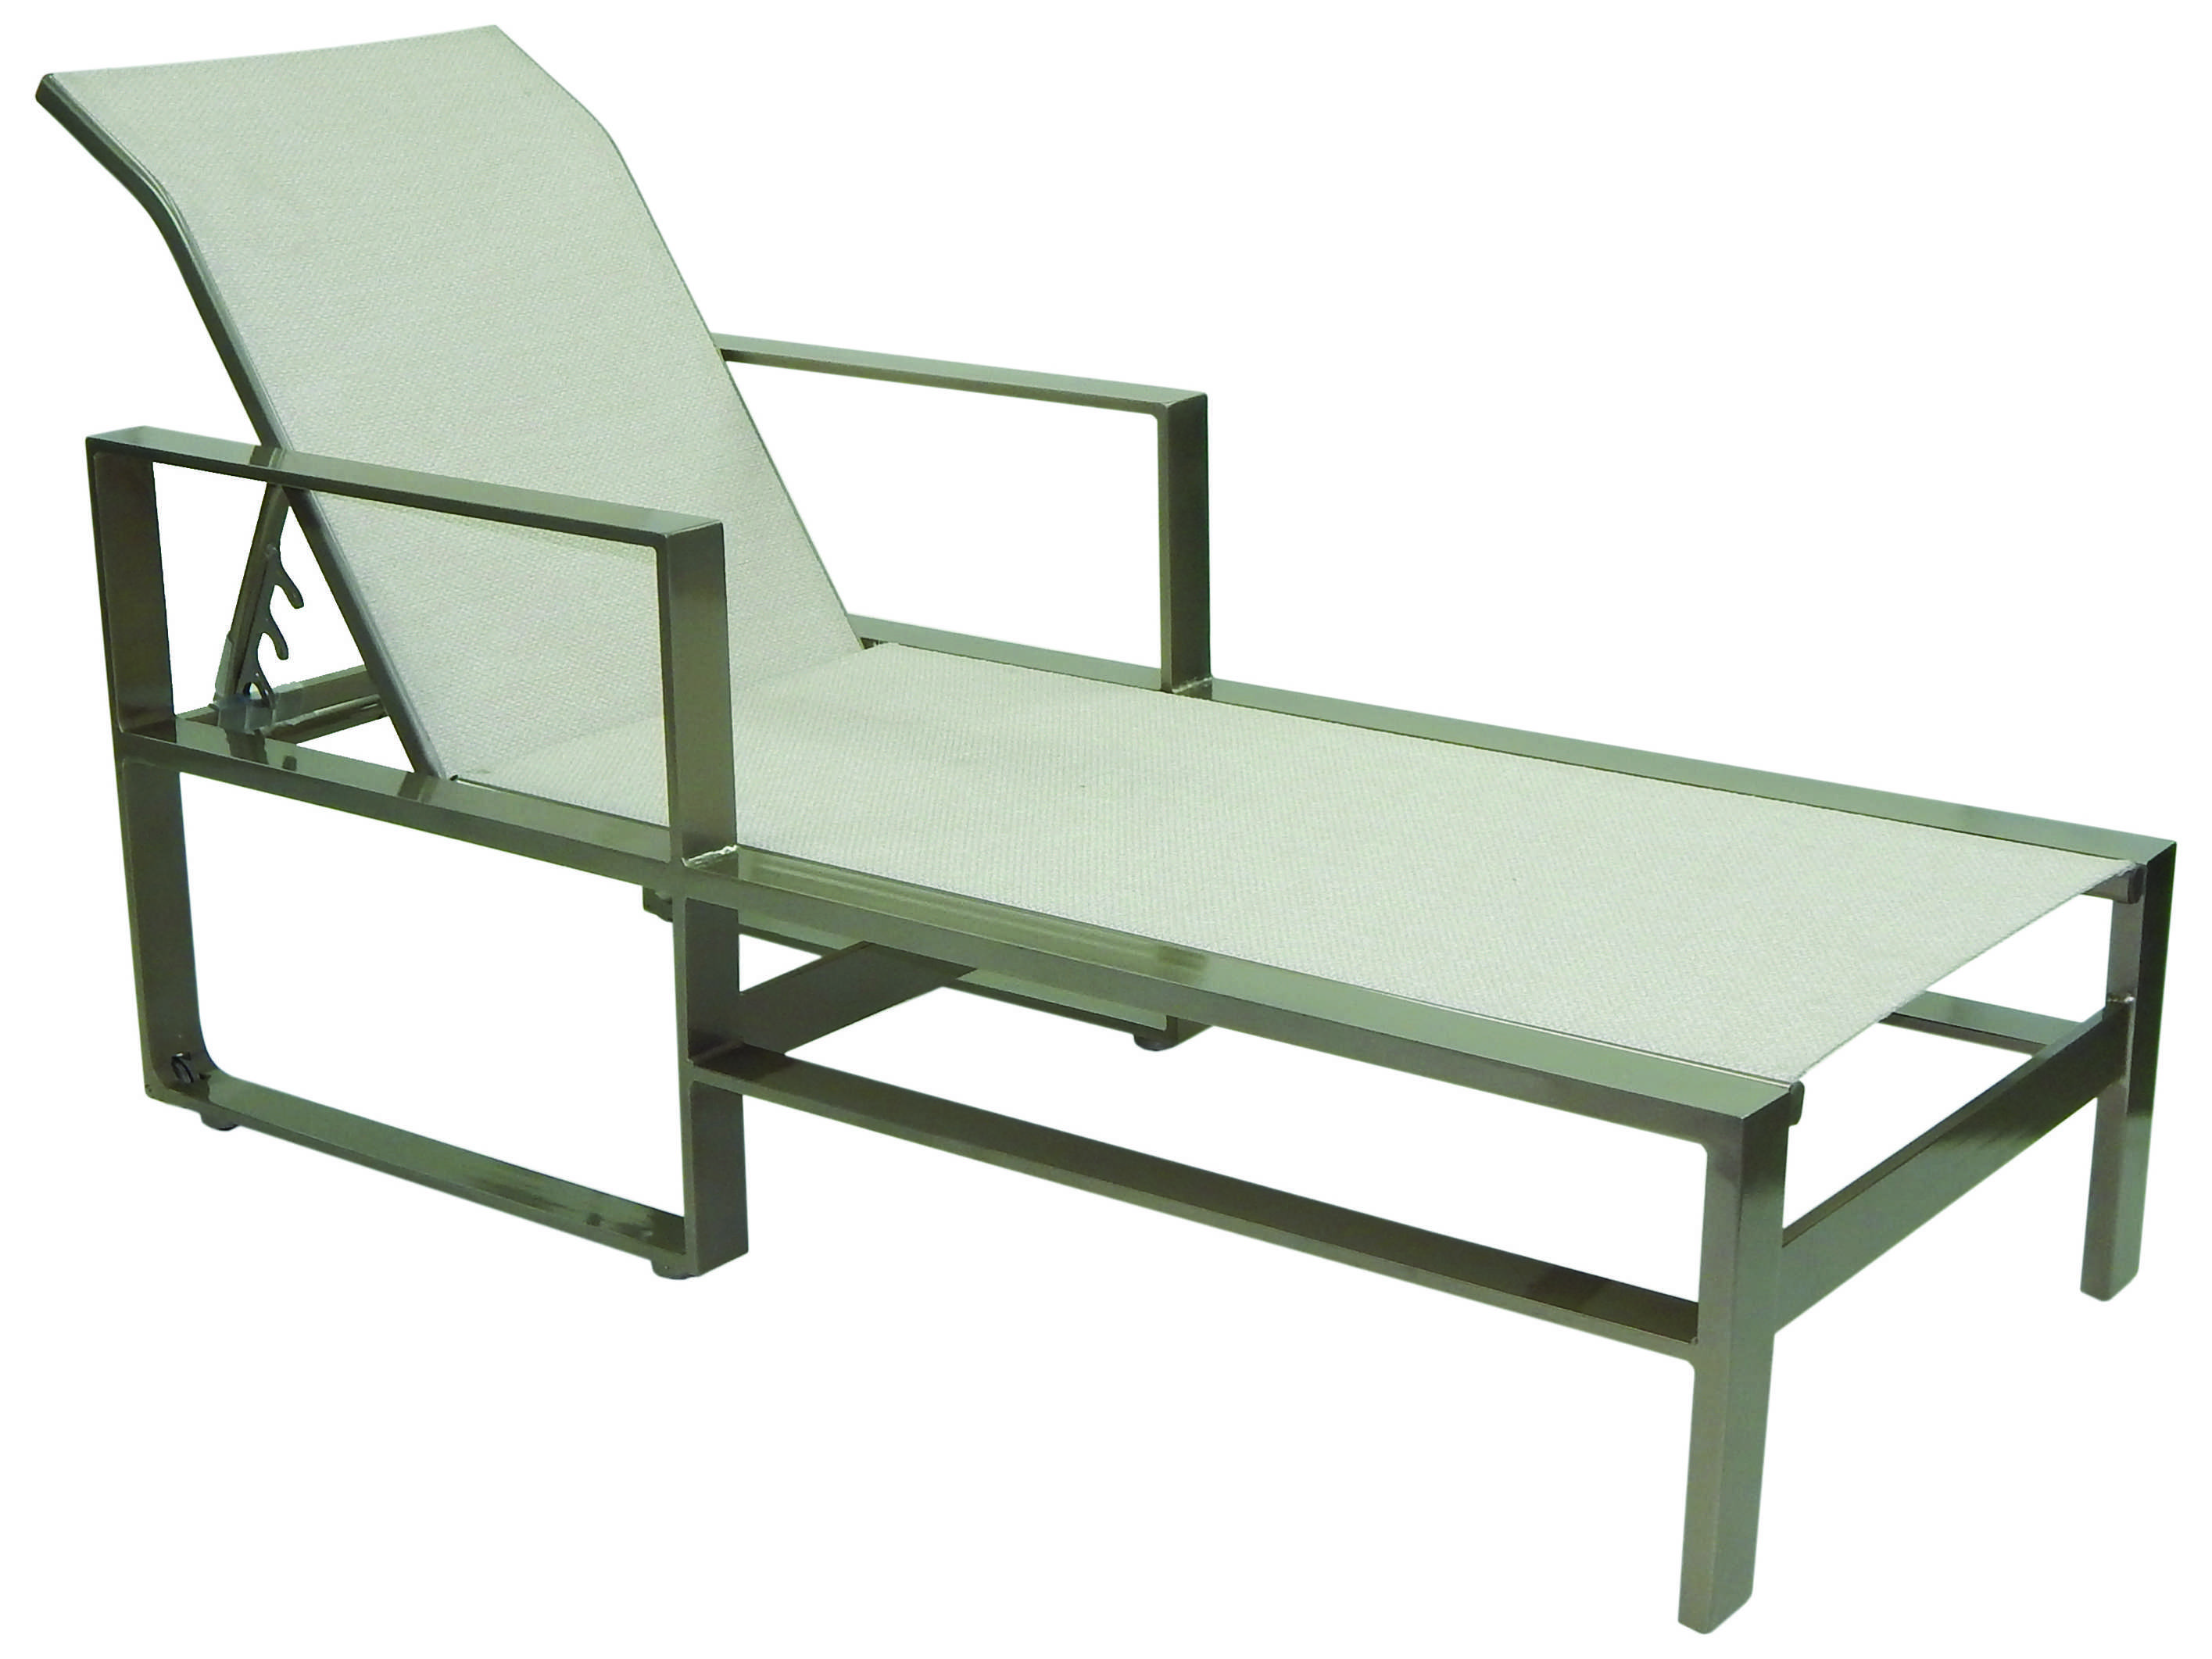 Castelle park place slin cast aluminum adjustable chaise for Cast aluminum chaise lounge